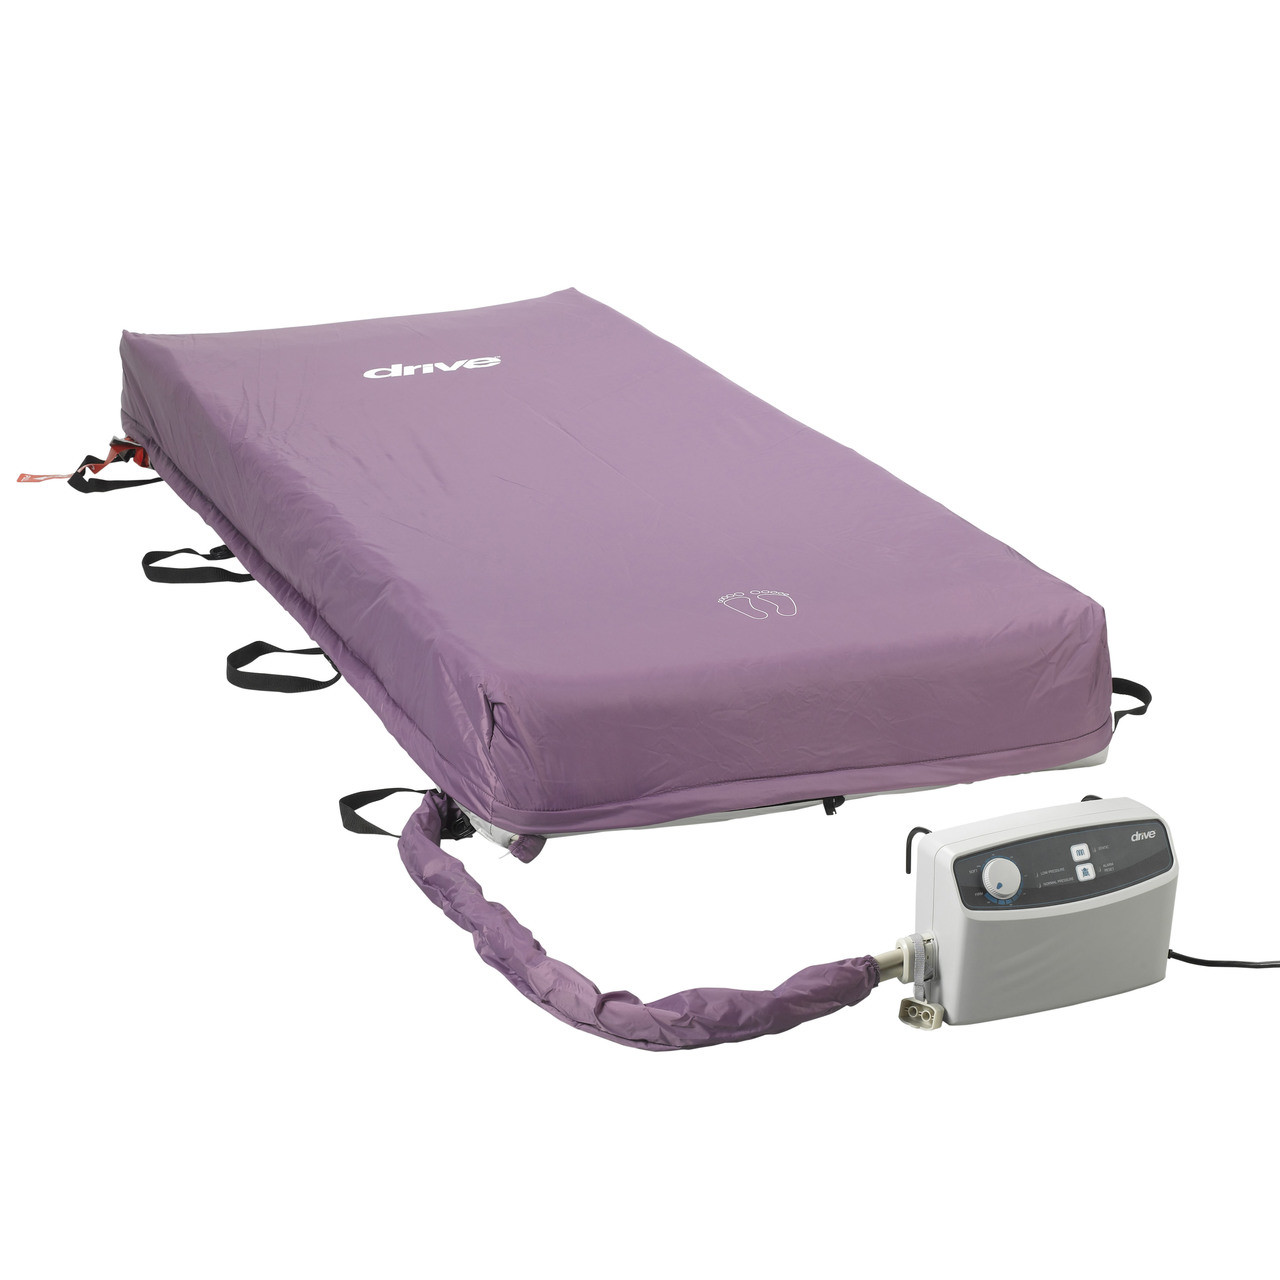 Med Aire Low Air Loss Mattress Alternating Pressure 14027